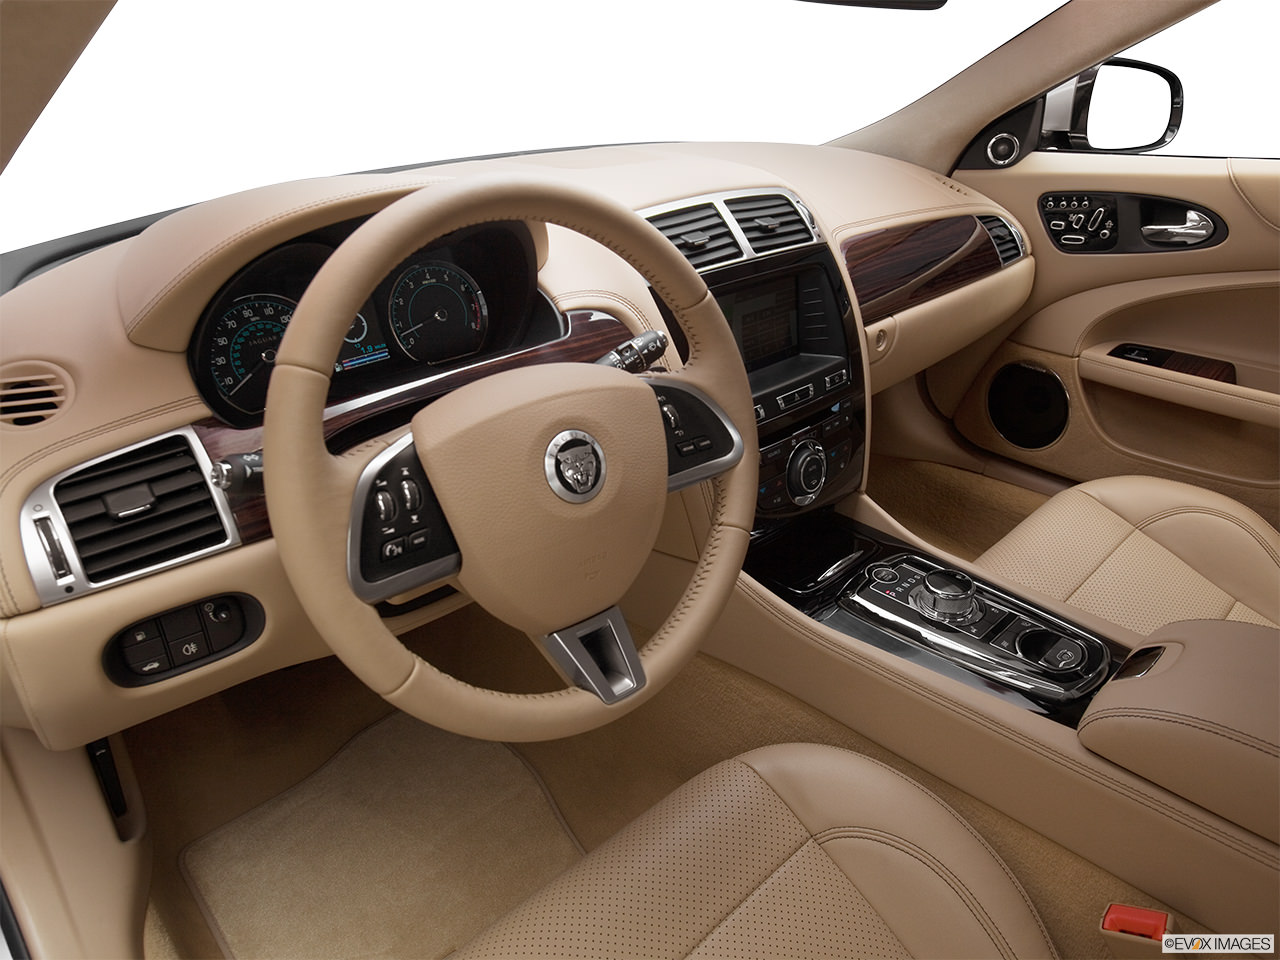 Jaguar XK 2012 Interior